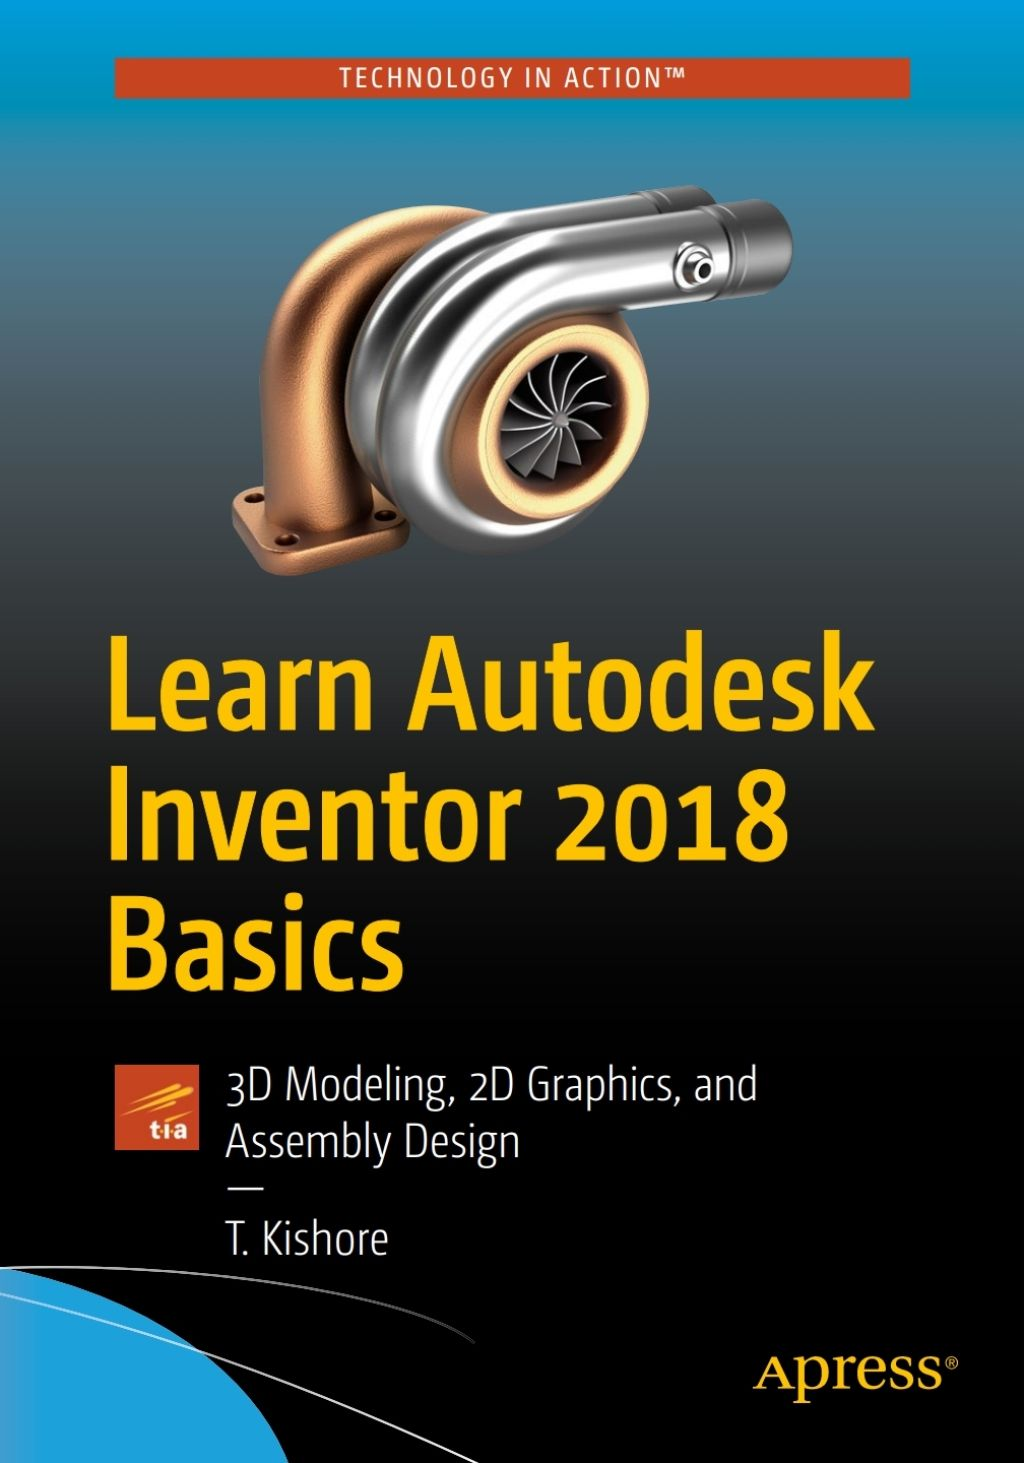 learn autodesk inventor 2018 basics ebook products autodesk rh pinterest com